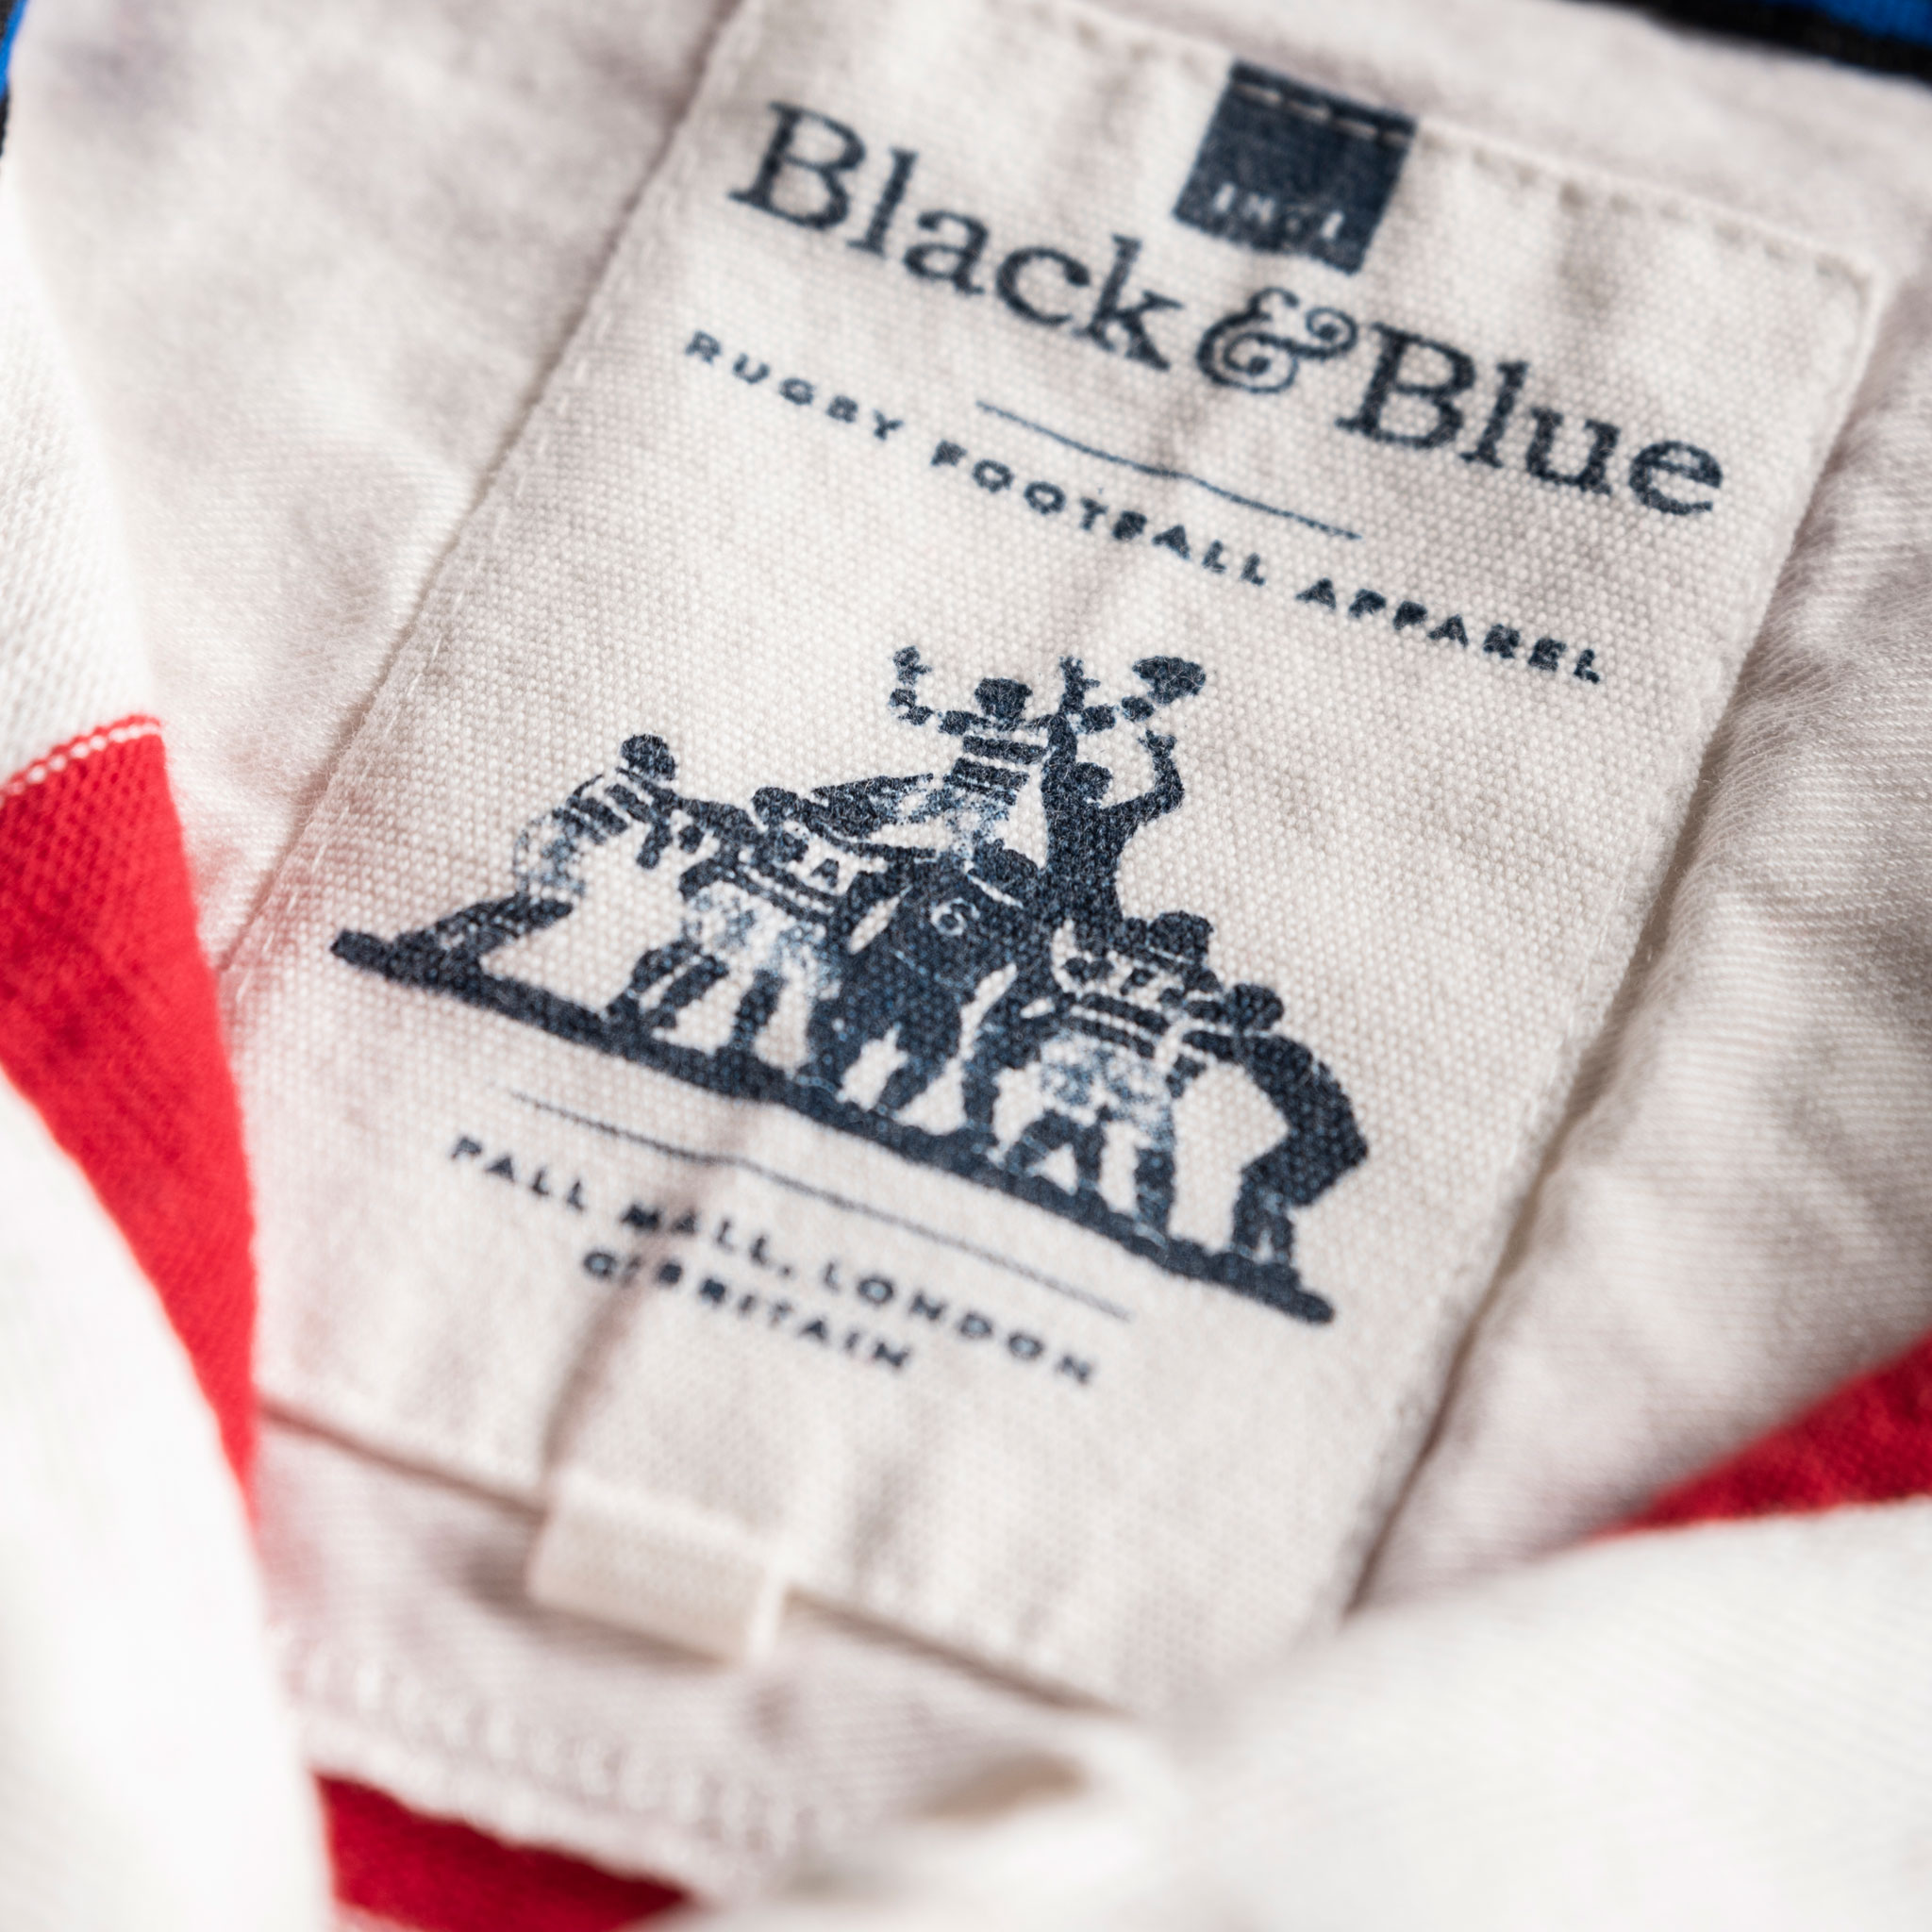 Newcastle Rebels 1908 rugby Shirt_BB Label